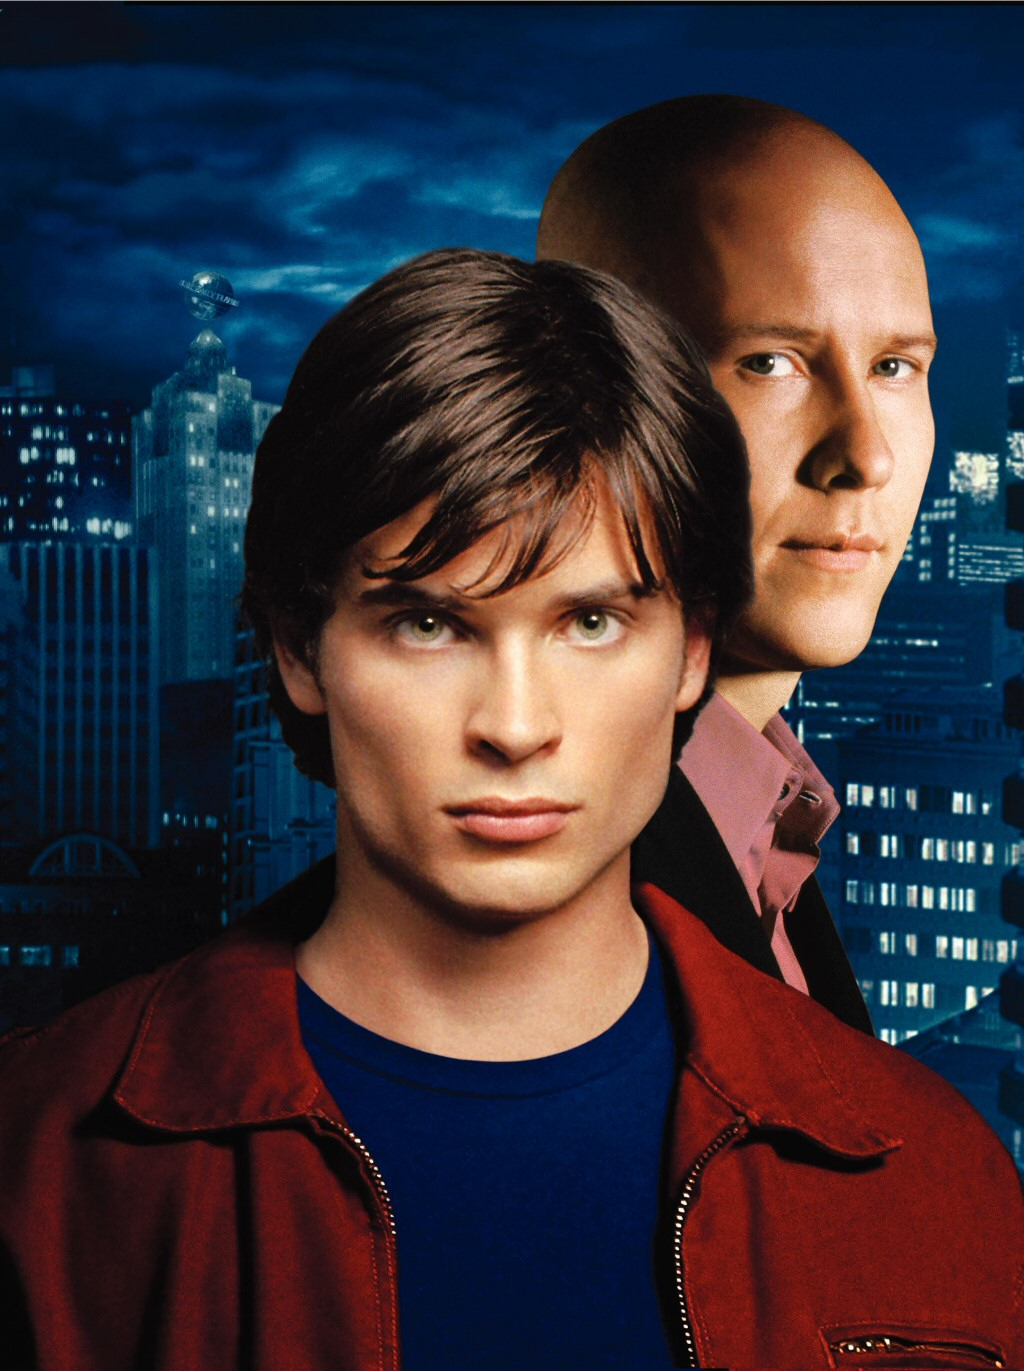 http://images.fanpop.com/images/image_uploads/Clark-and-Lex-smallville-34461_1024_1371.jpg